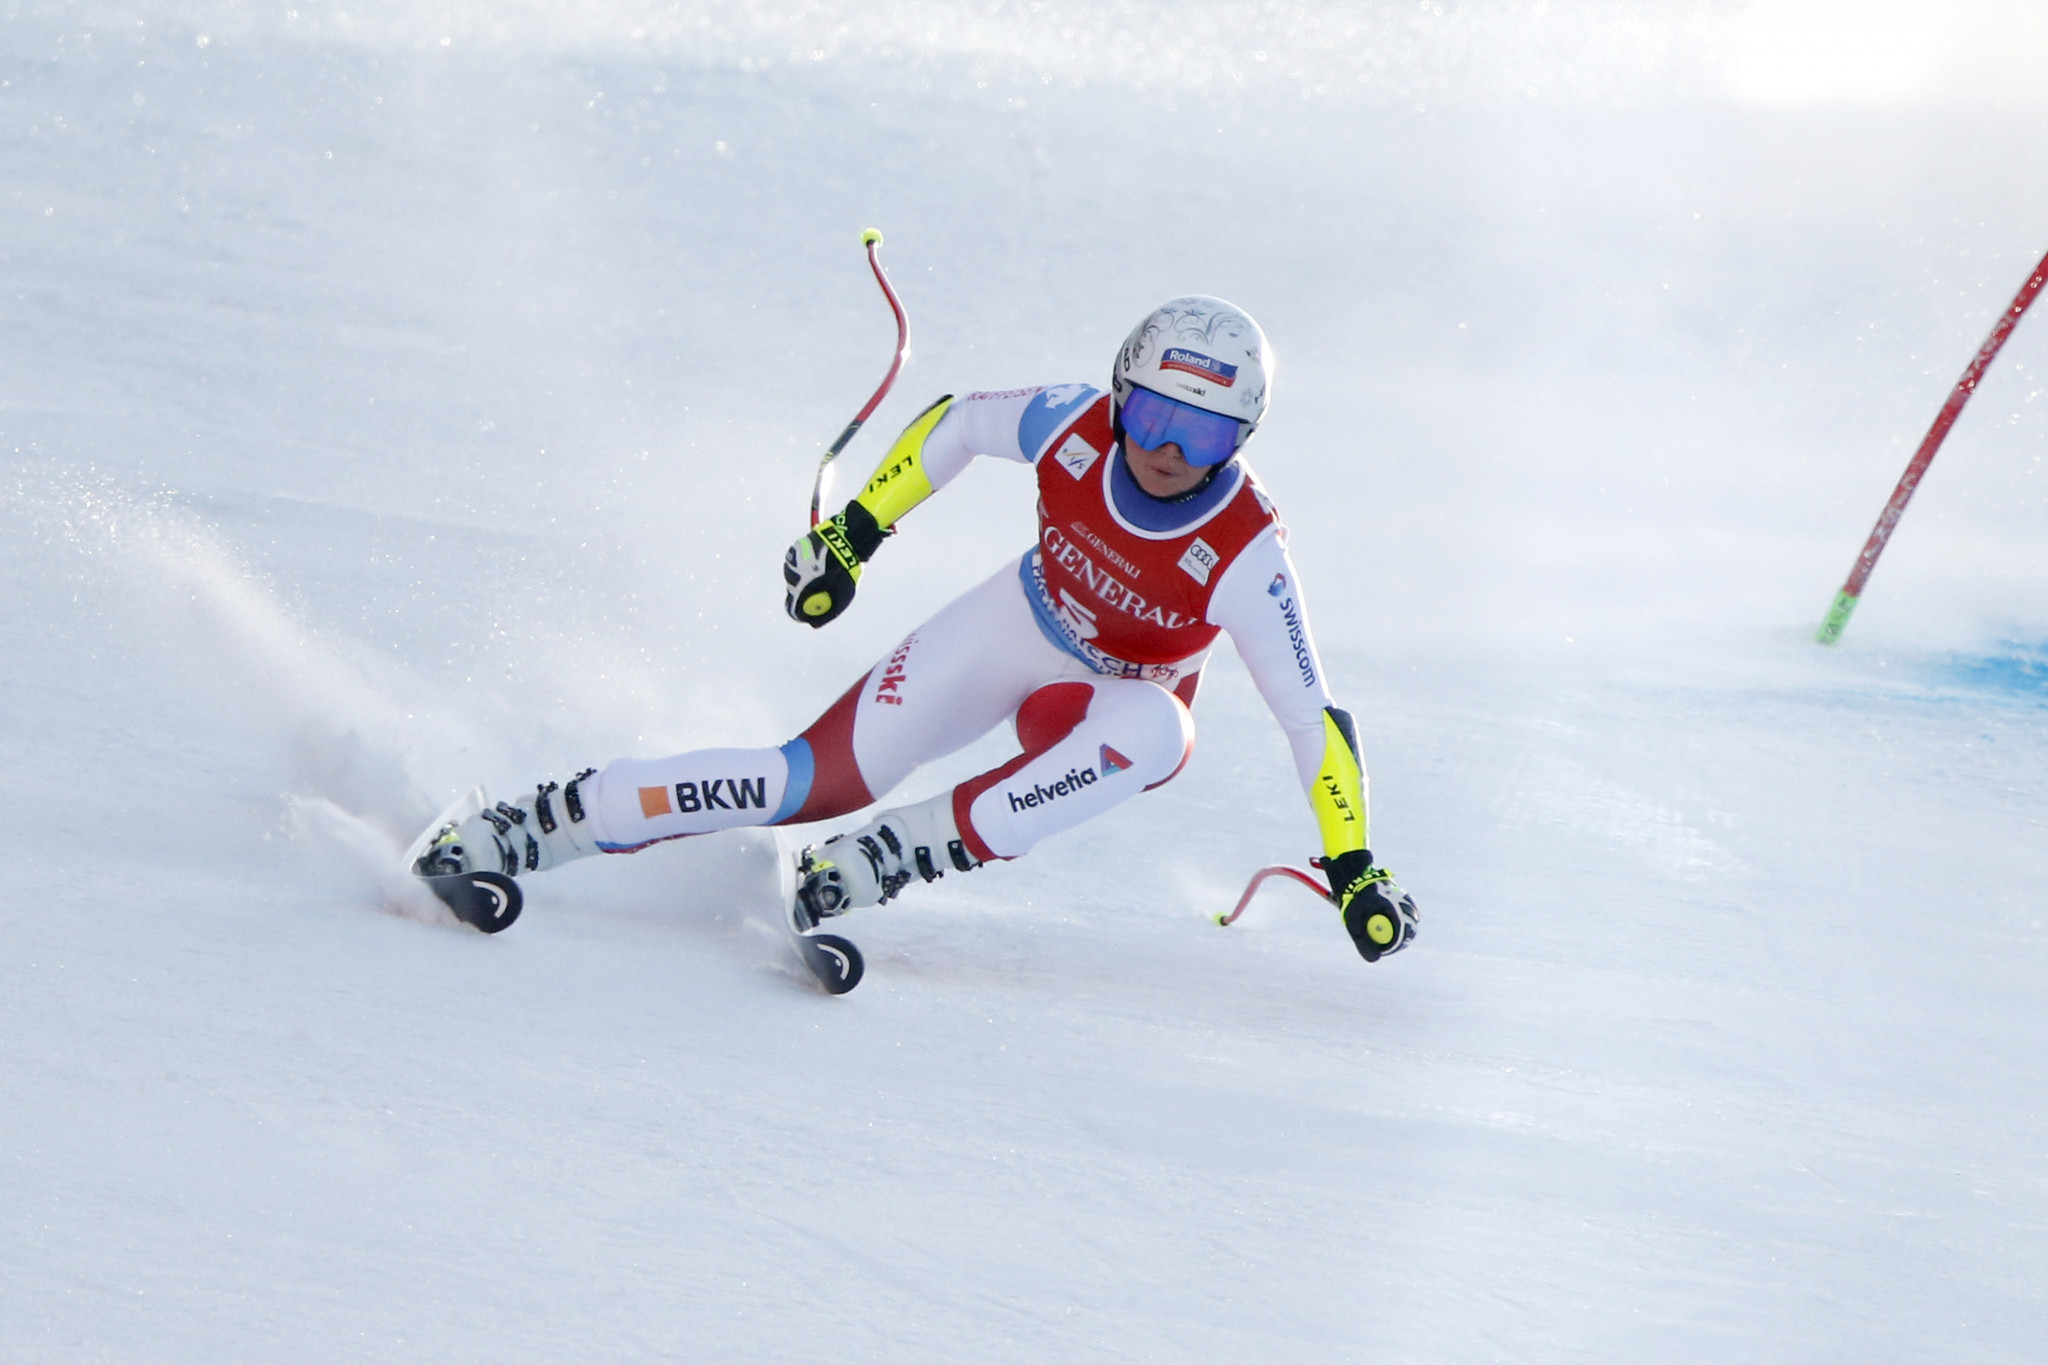 Suter moves to top of FIS Alpine Ski World Cup Super-G standings